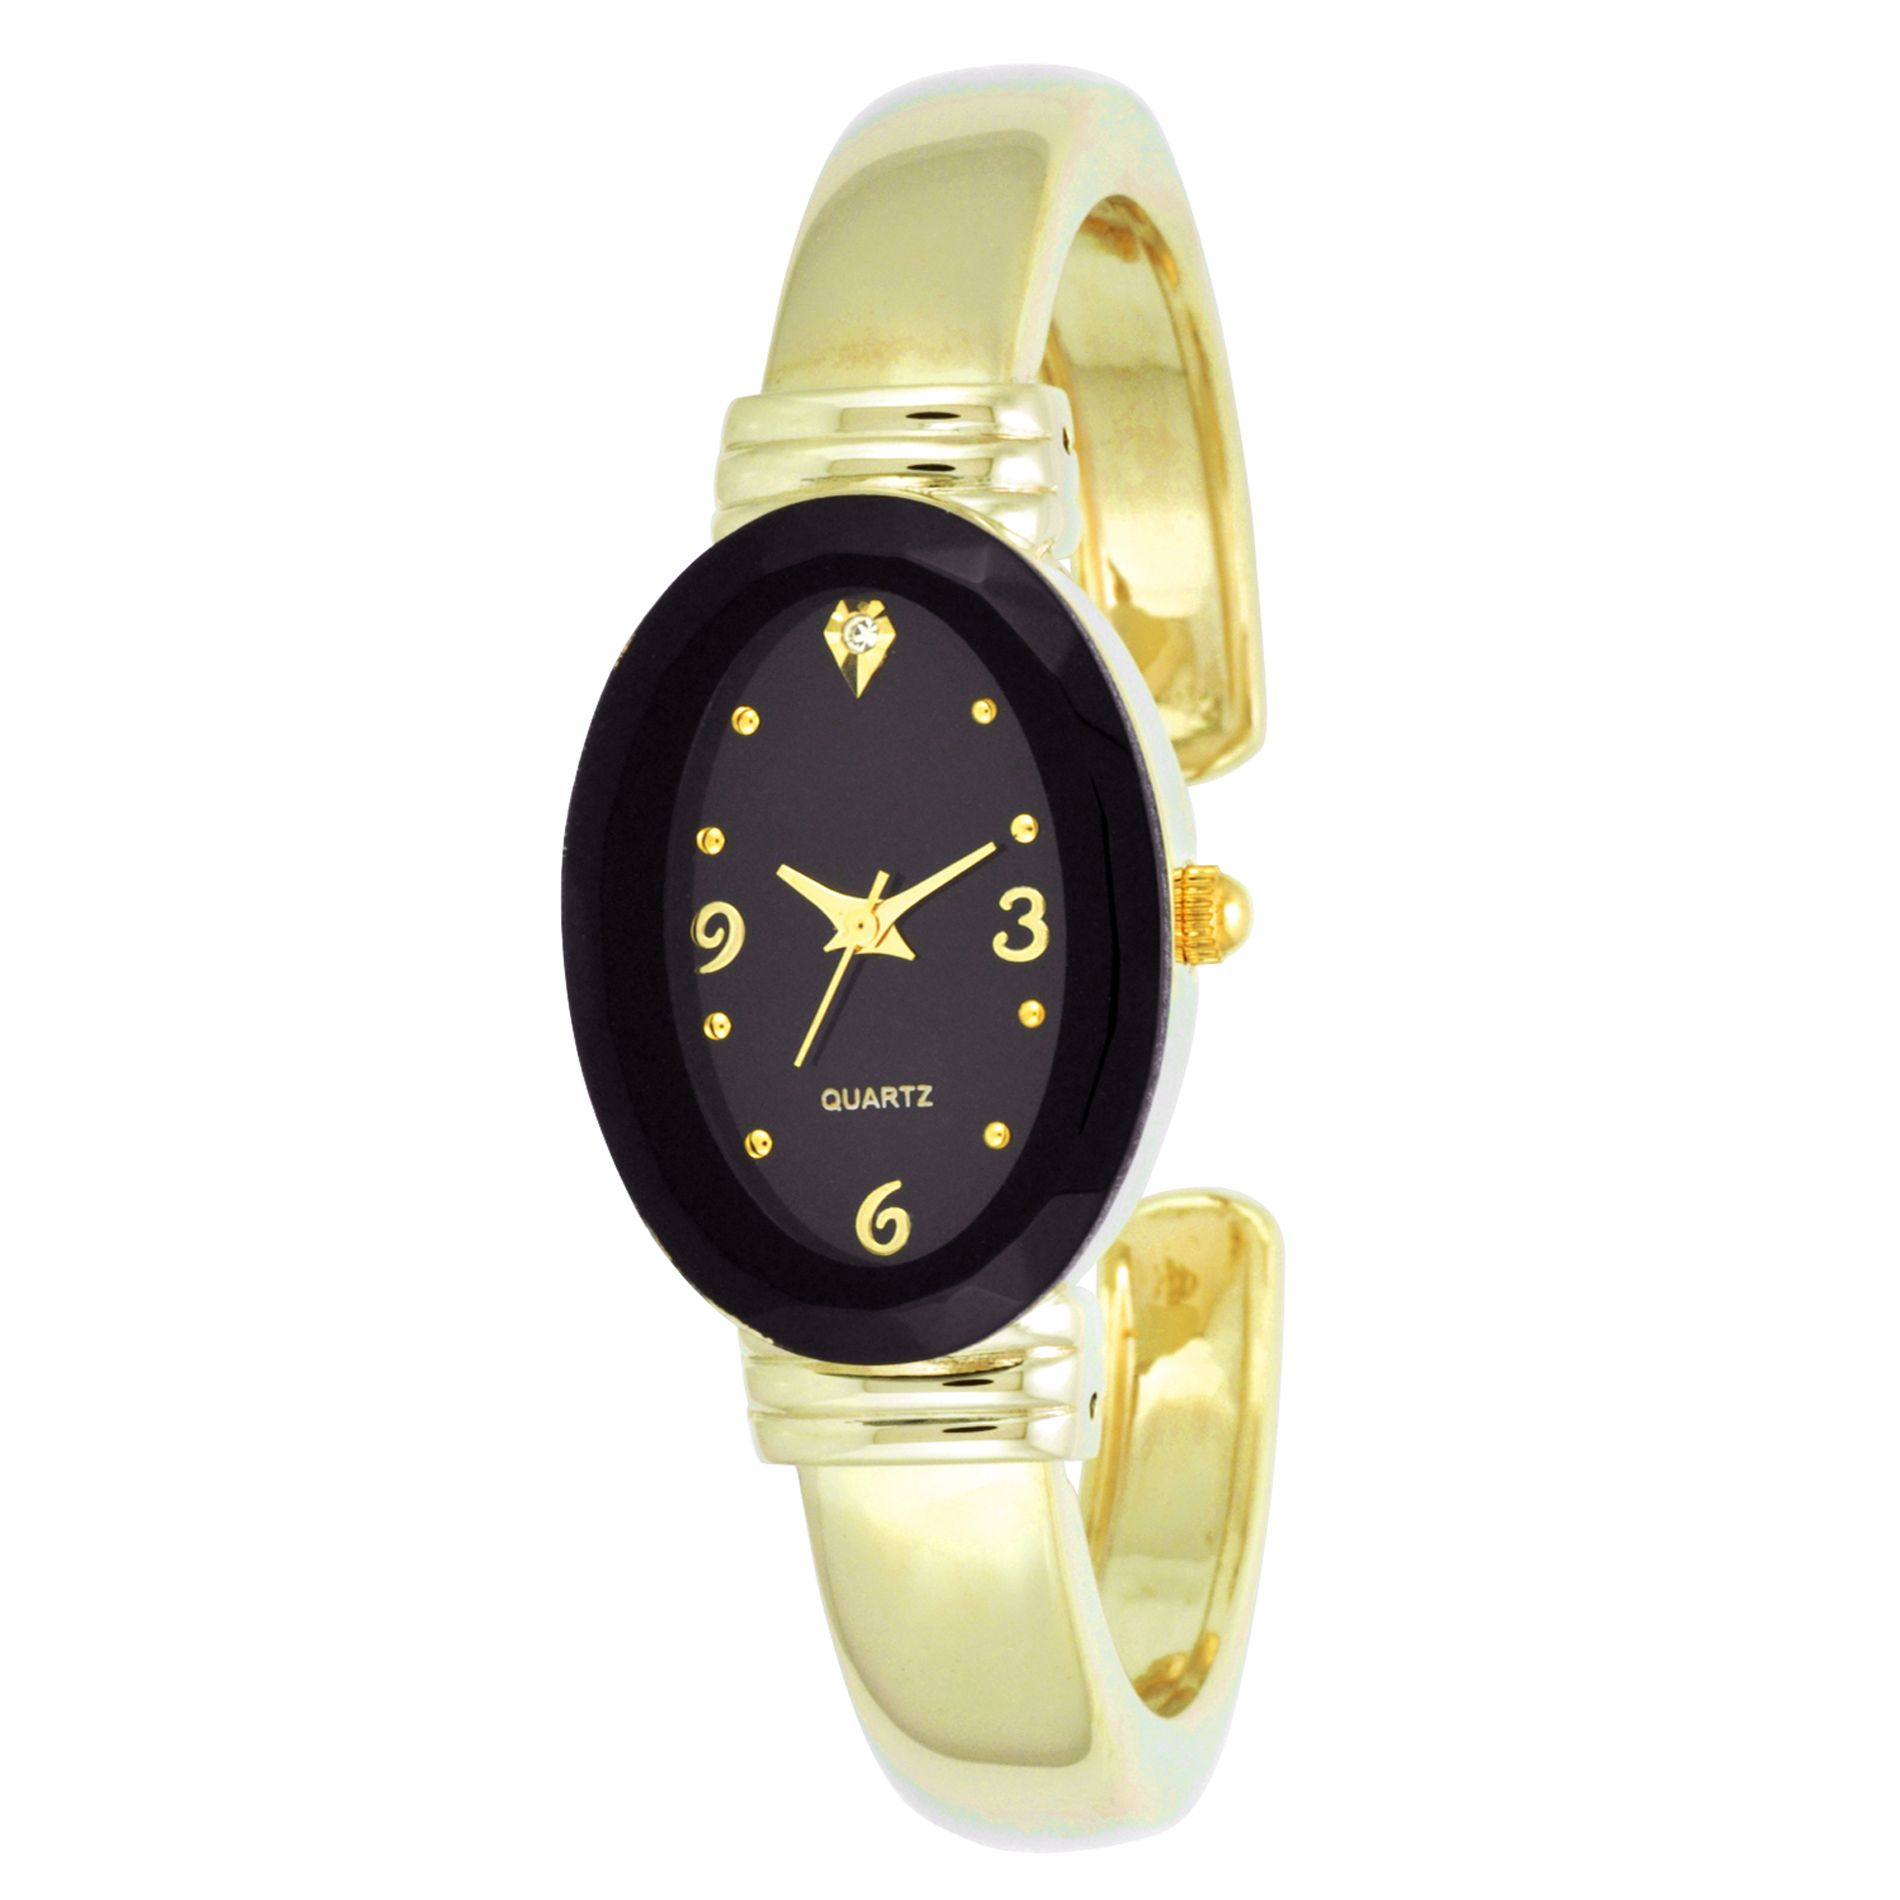 Ladies Dress Watch w/Black Oval Case, Crystal Accent Dial and GT Bangle Band